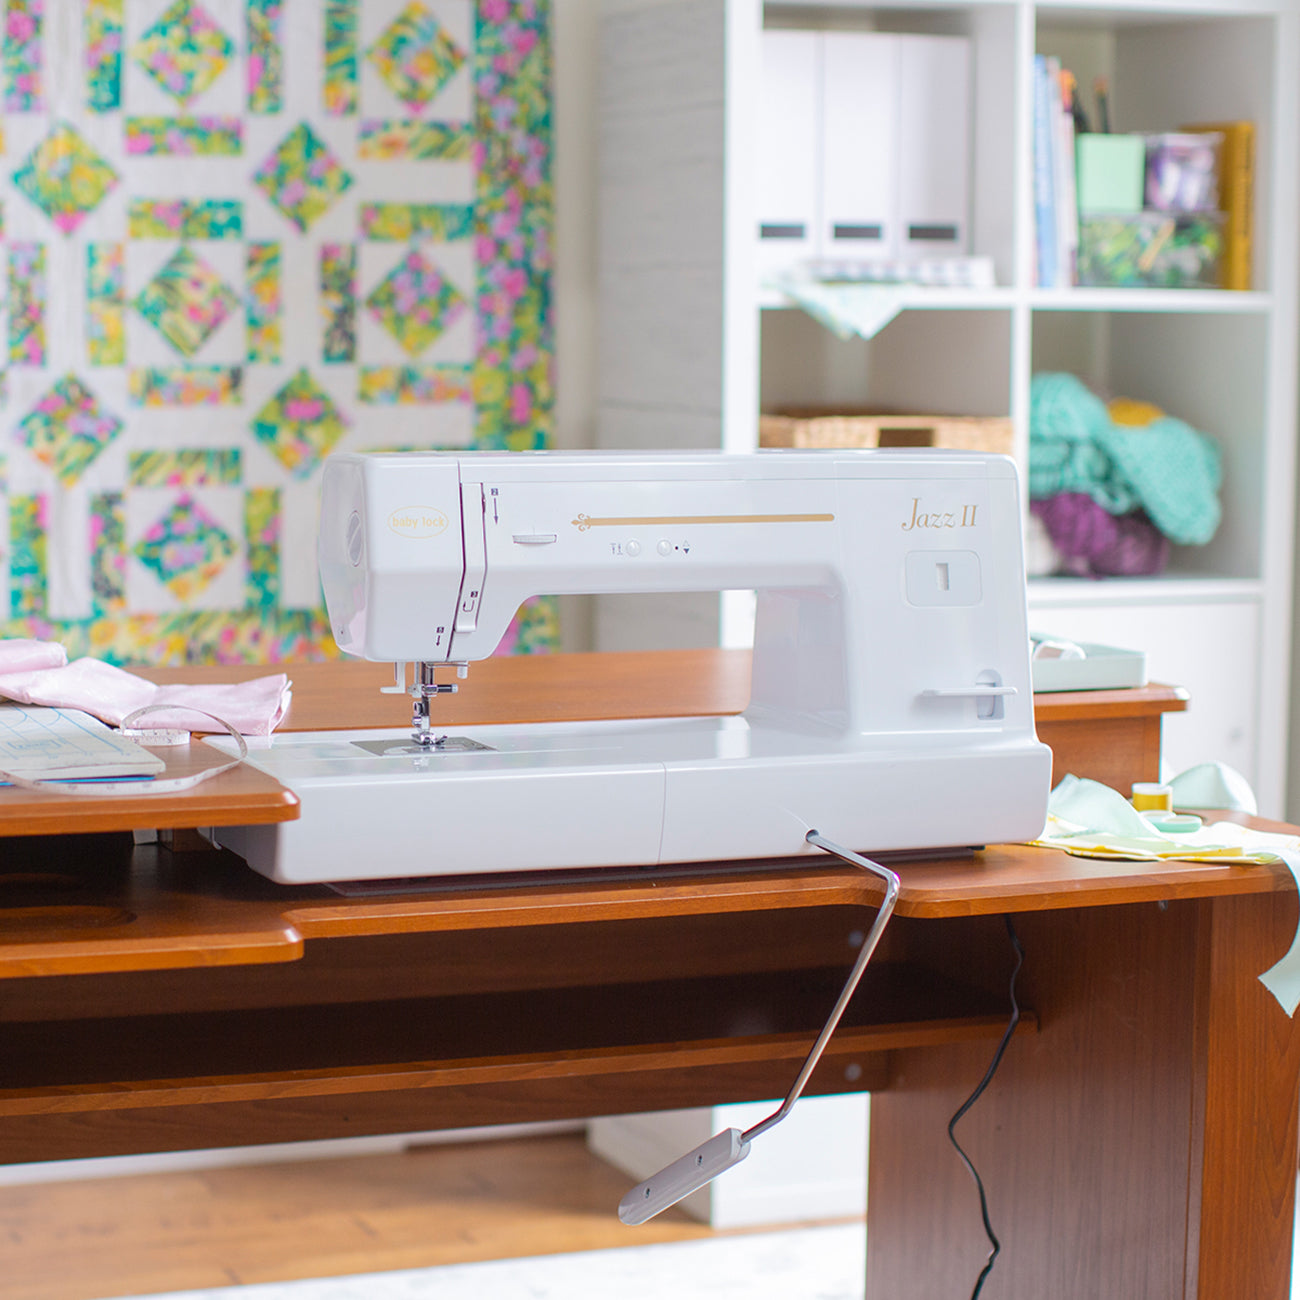 Sewing and Quilting Machine, Jazz II